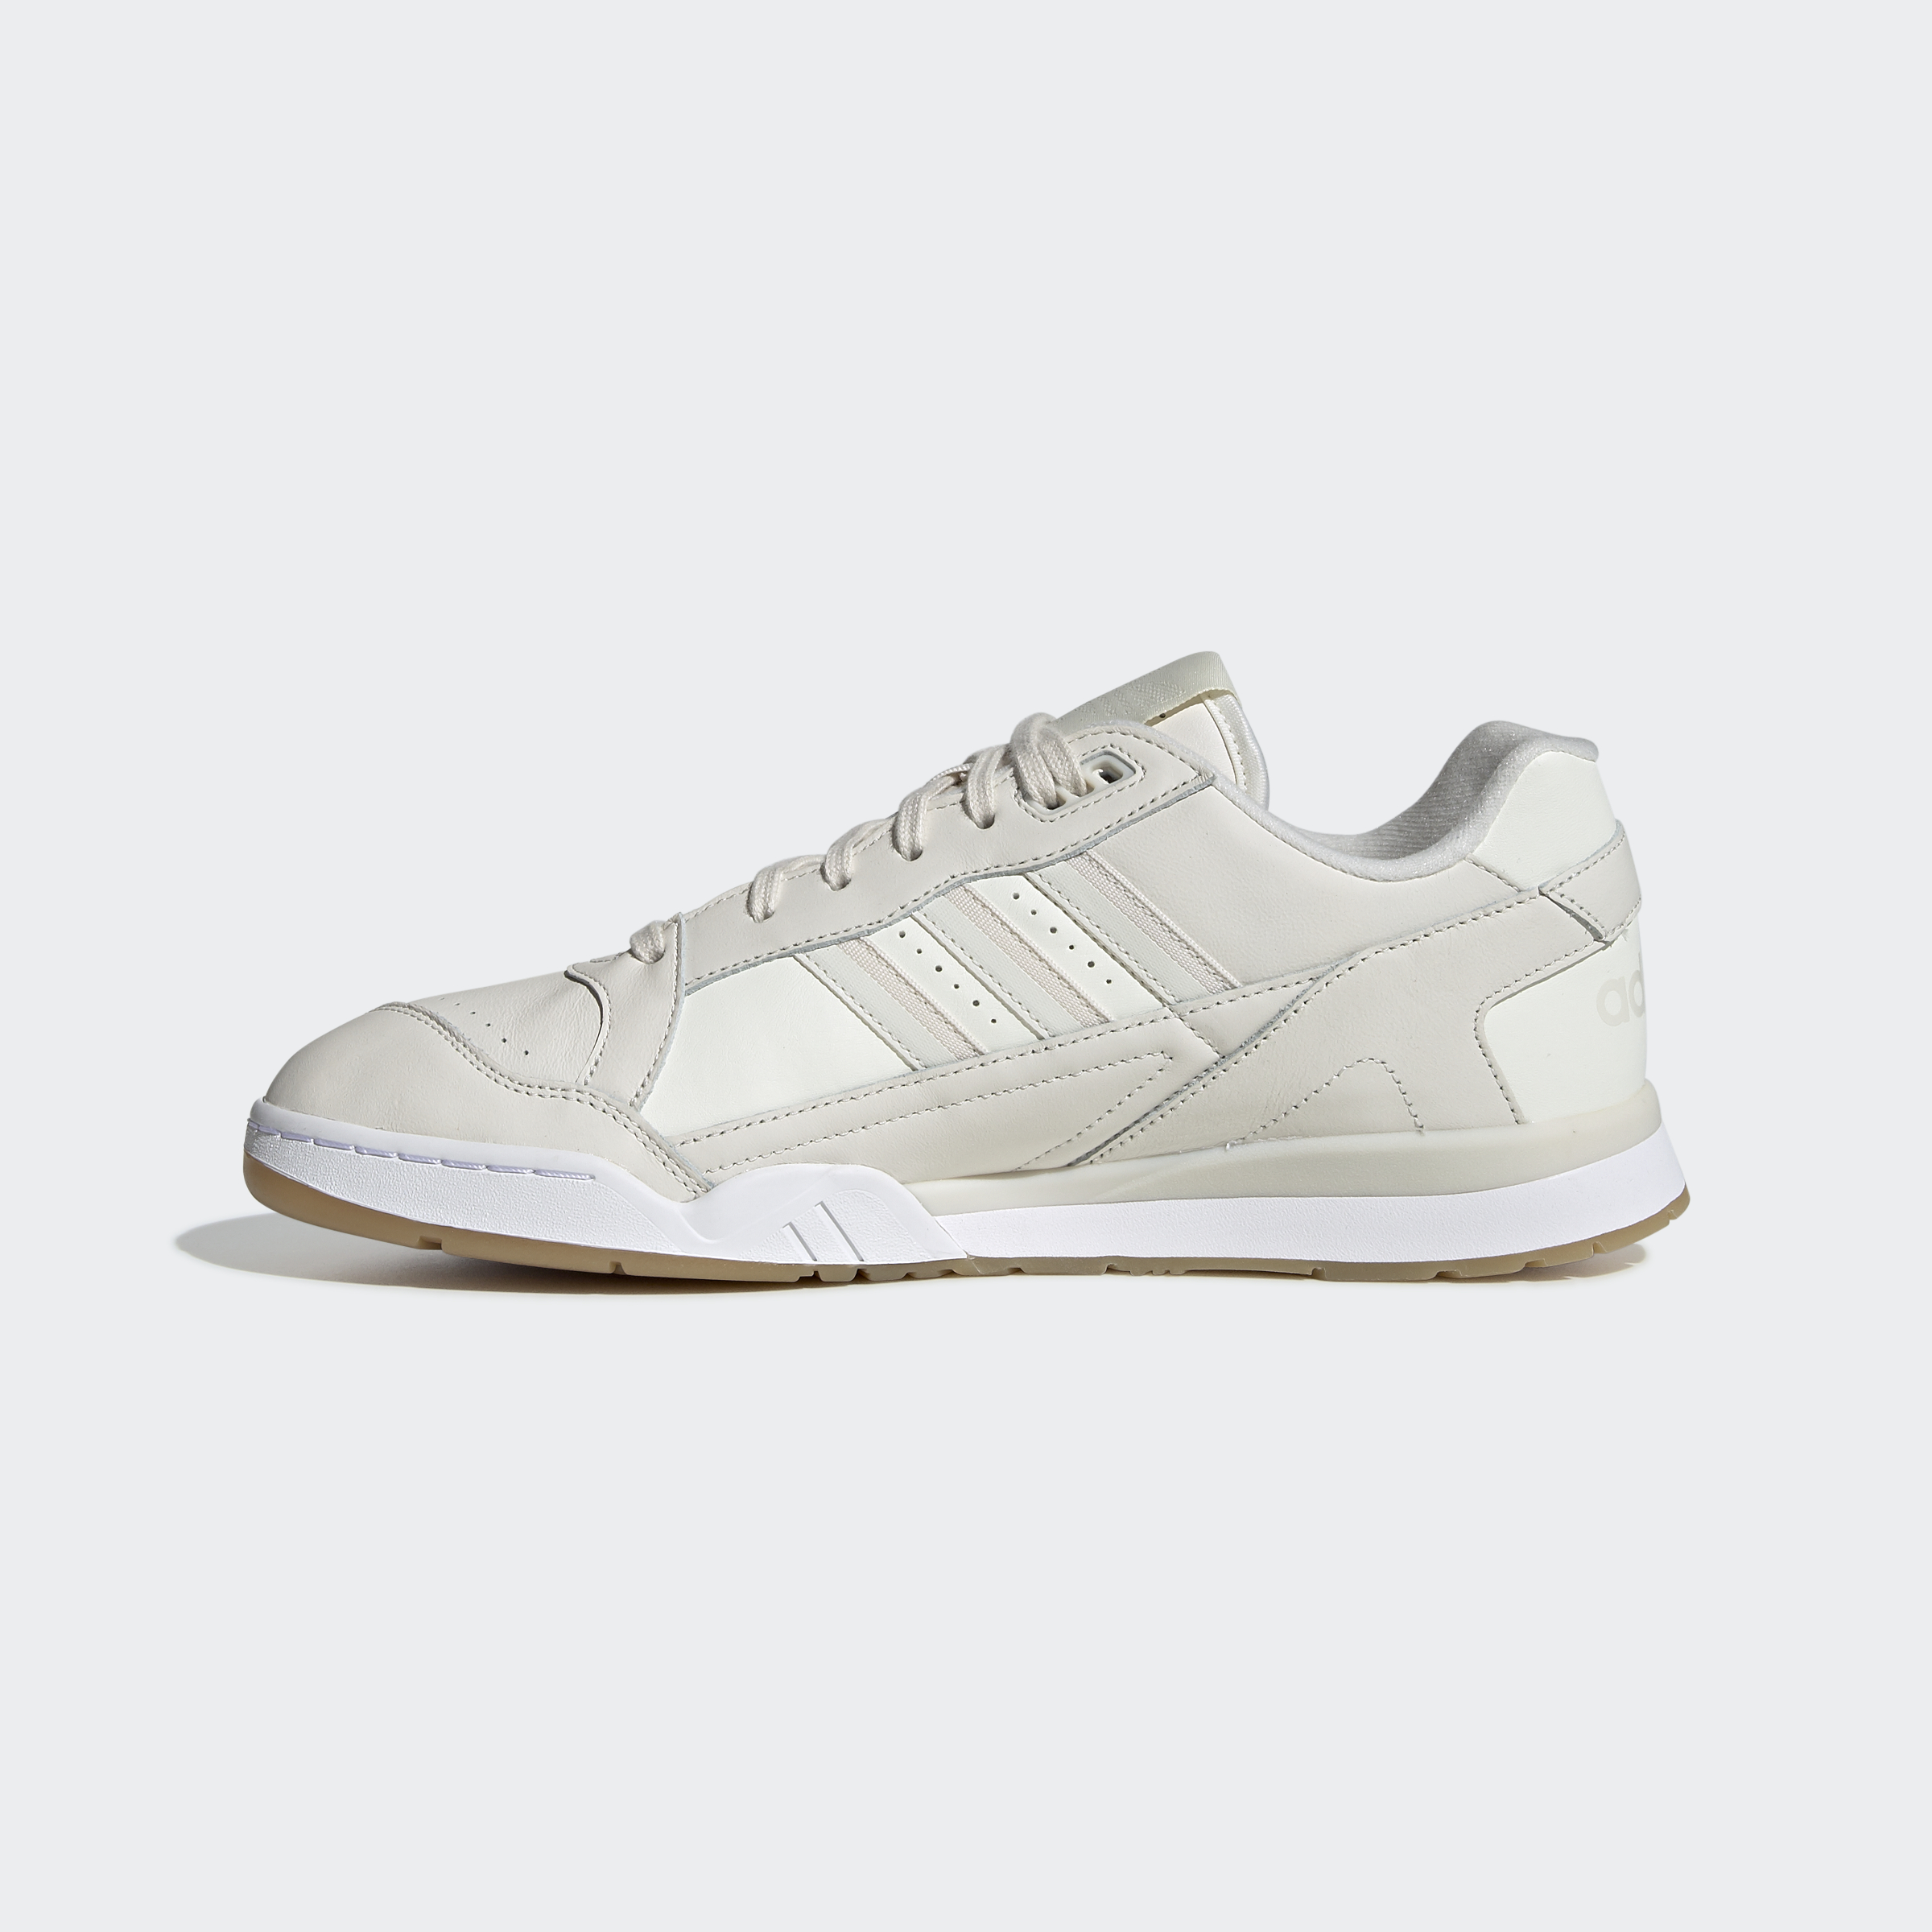 adidas-A-R-Trainer-Shoes-Athletic-amp-Sneakers thumbnail 16